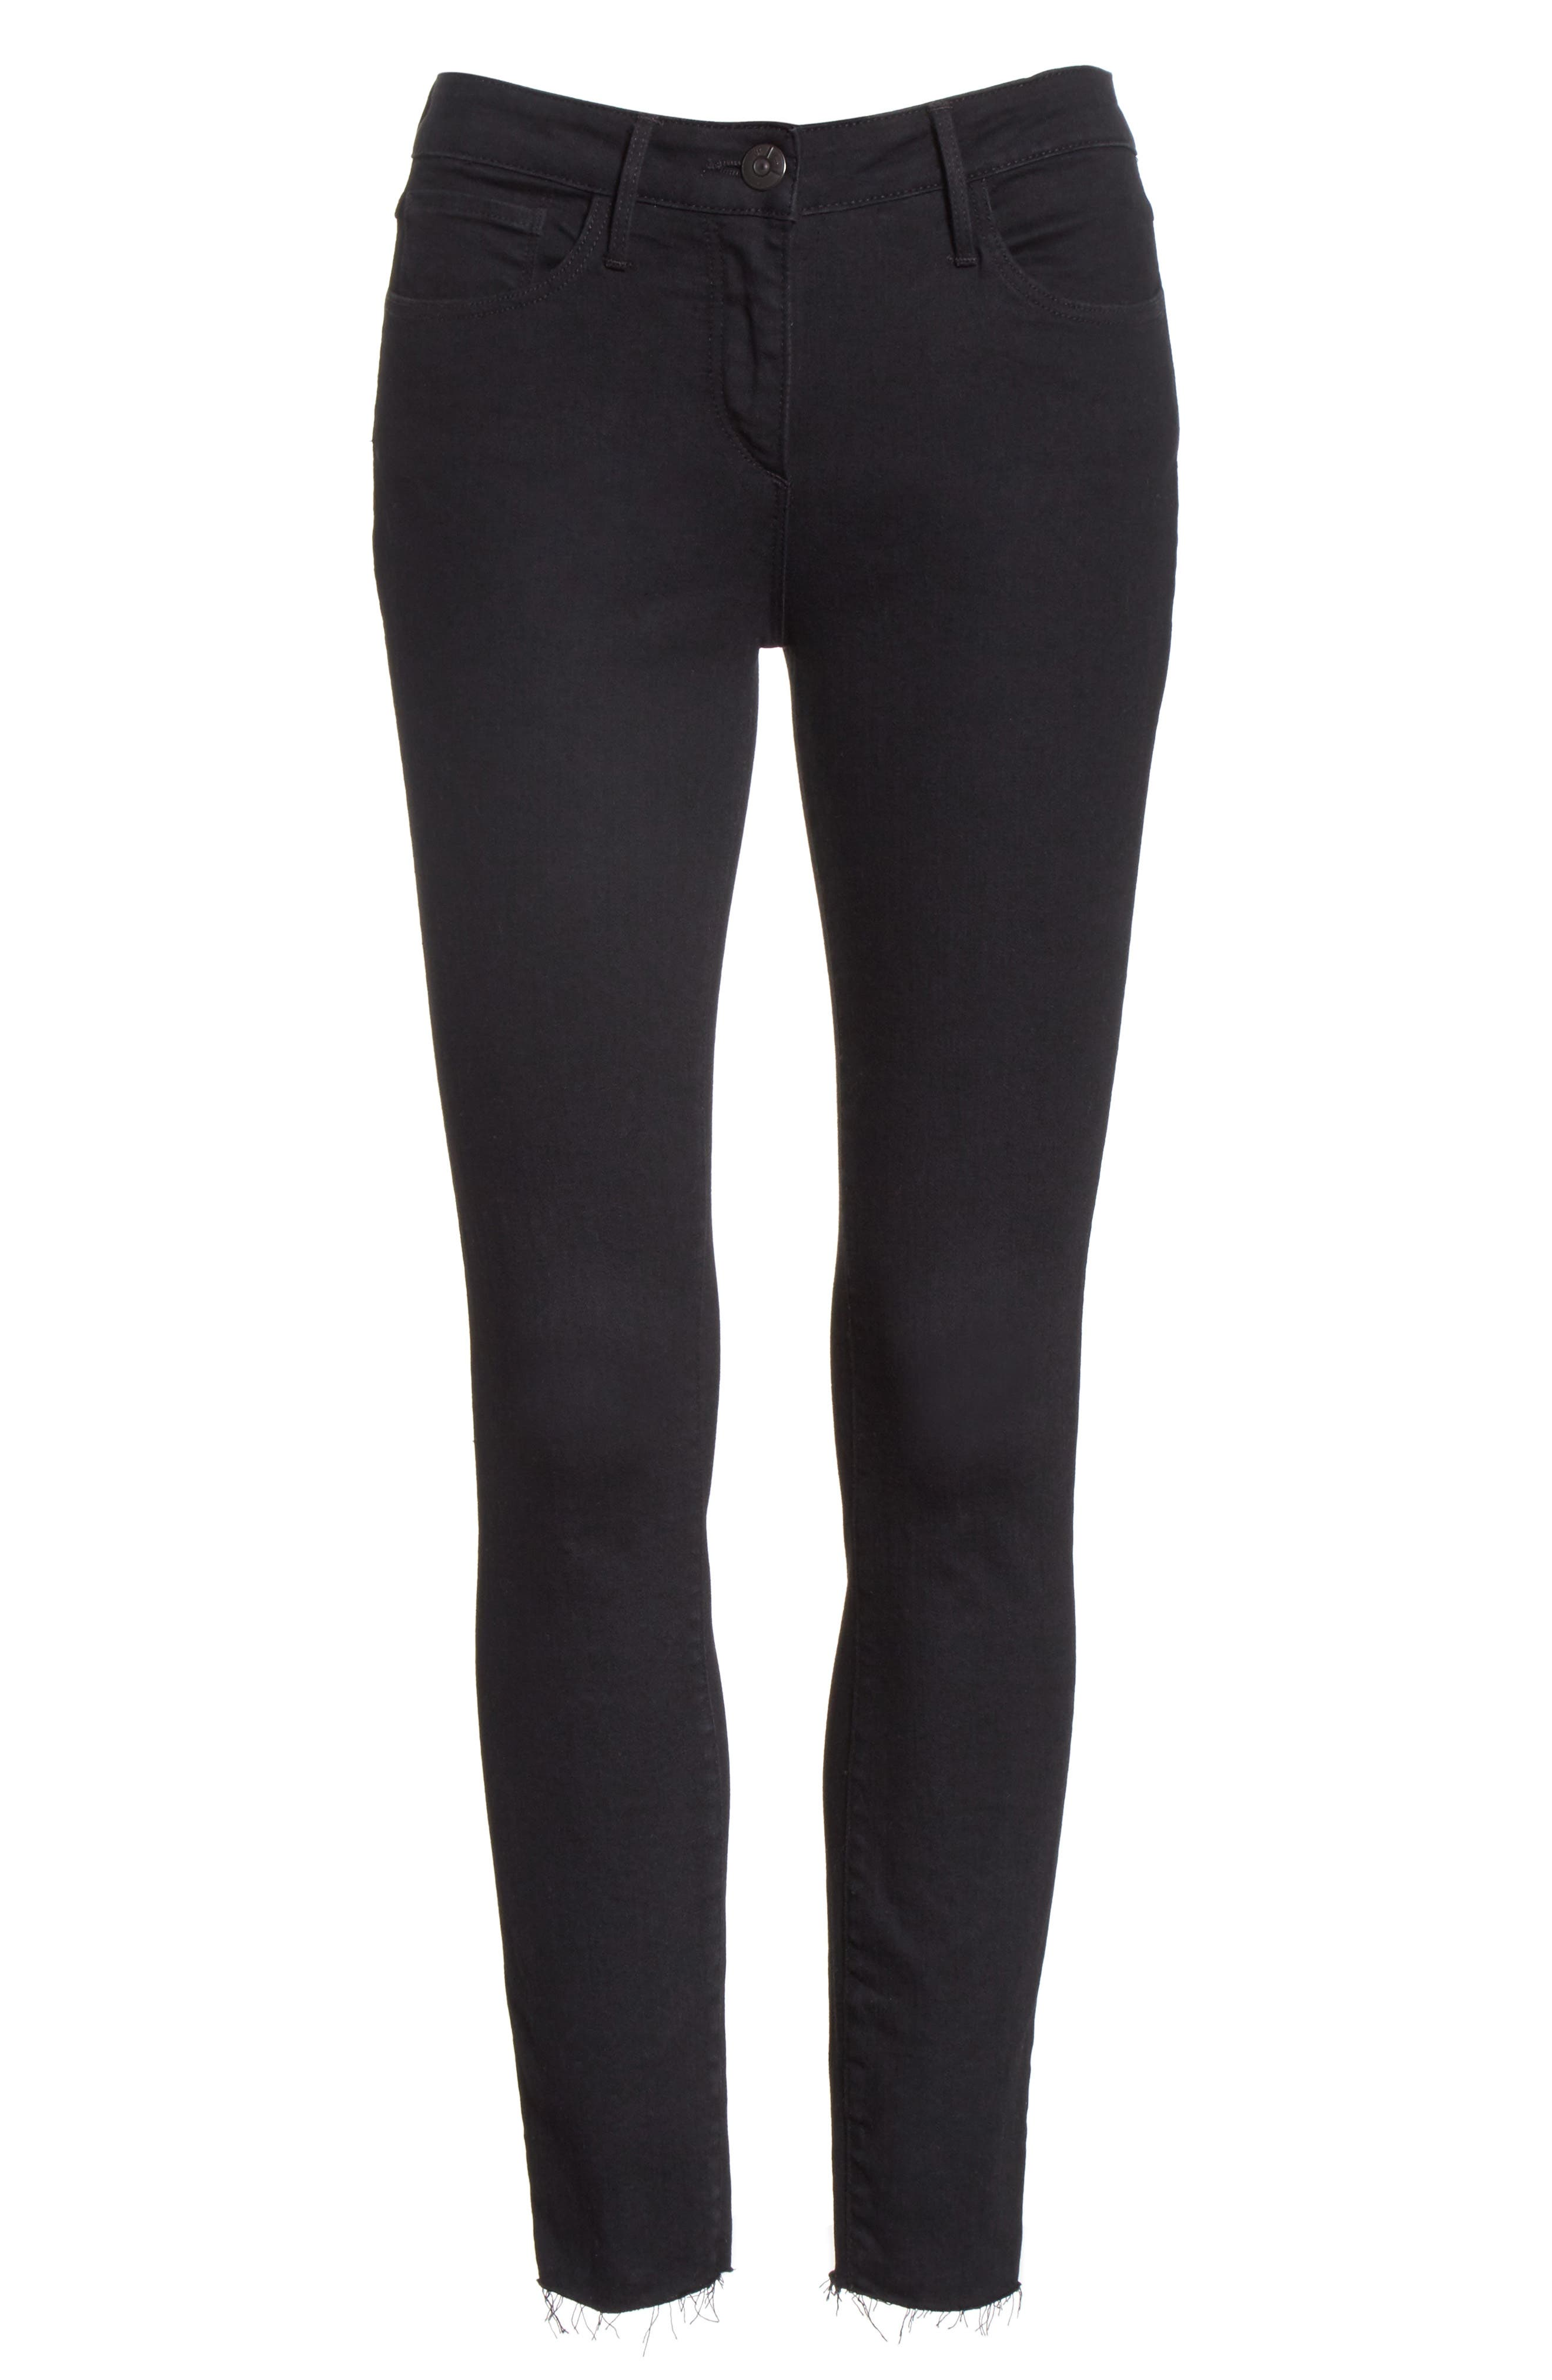 W2 Crop Skinny Jeans,                             Alternate thumbnail 6, color,                             BLACK TEAR